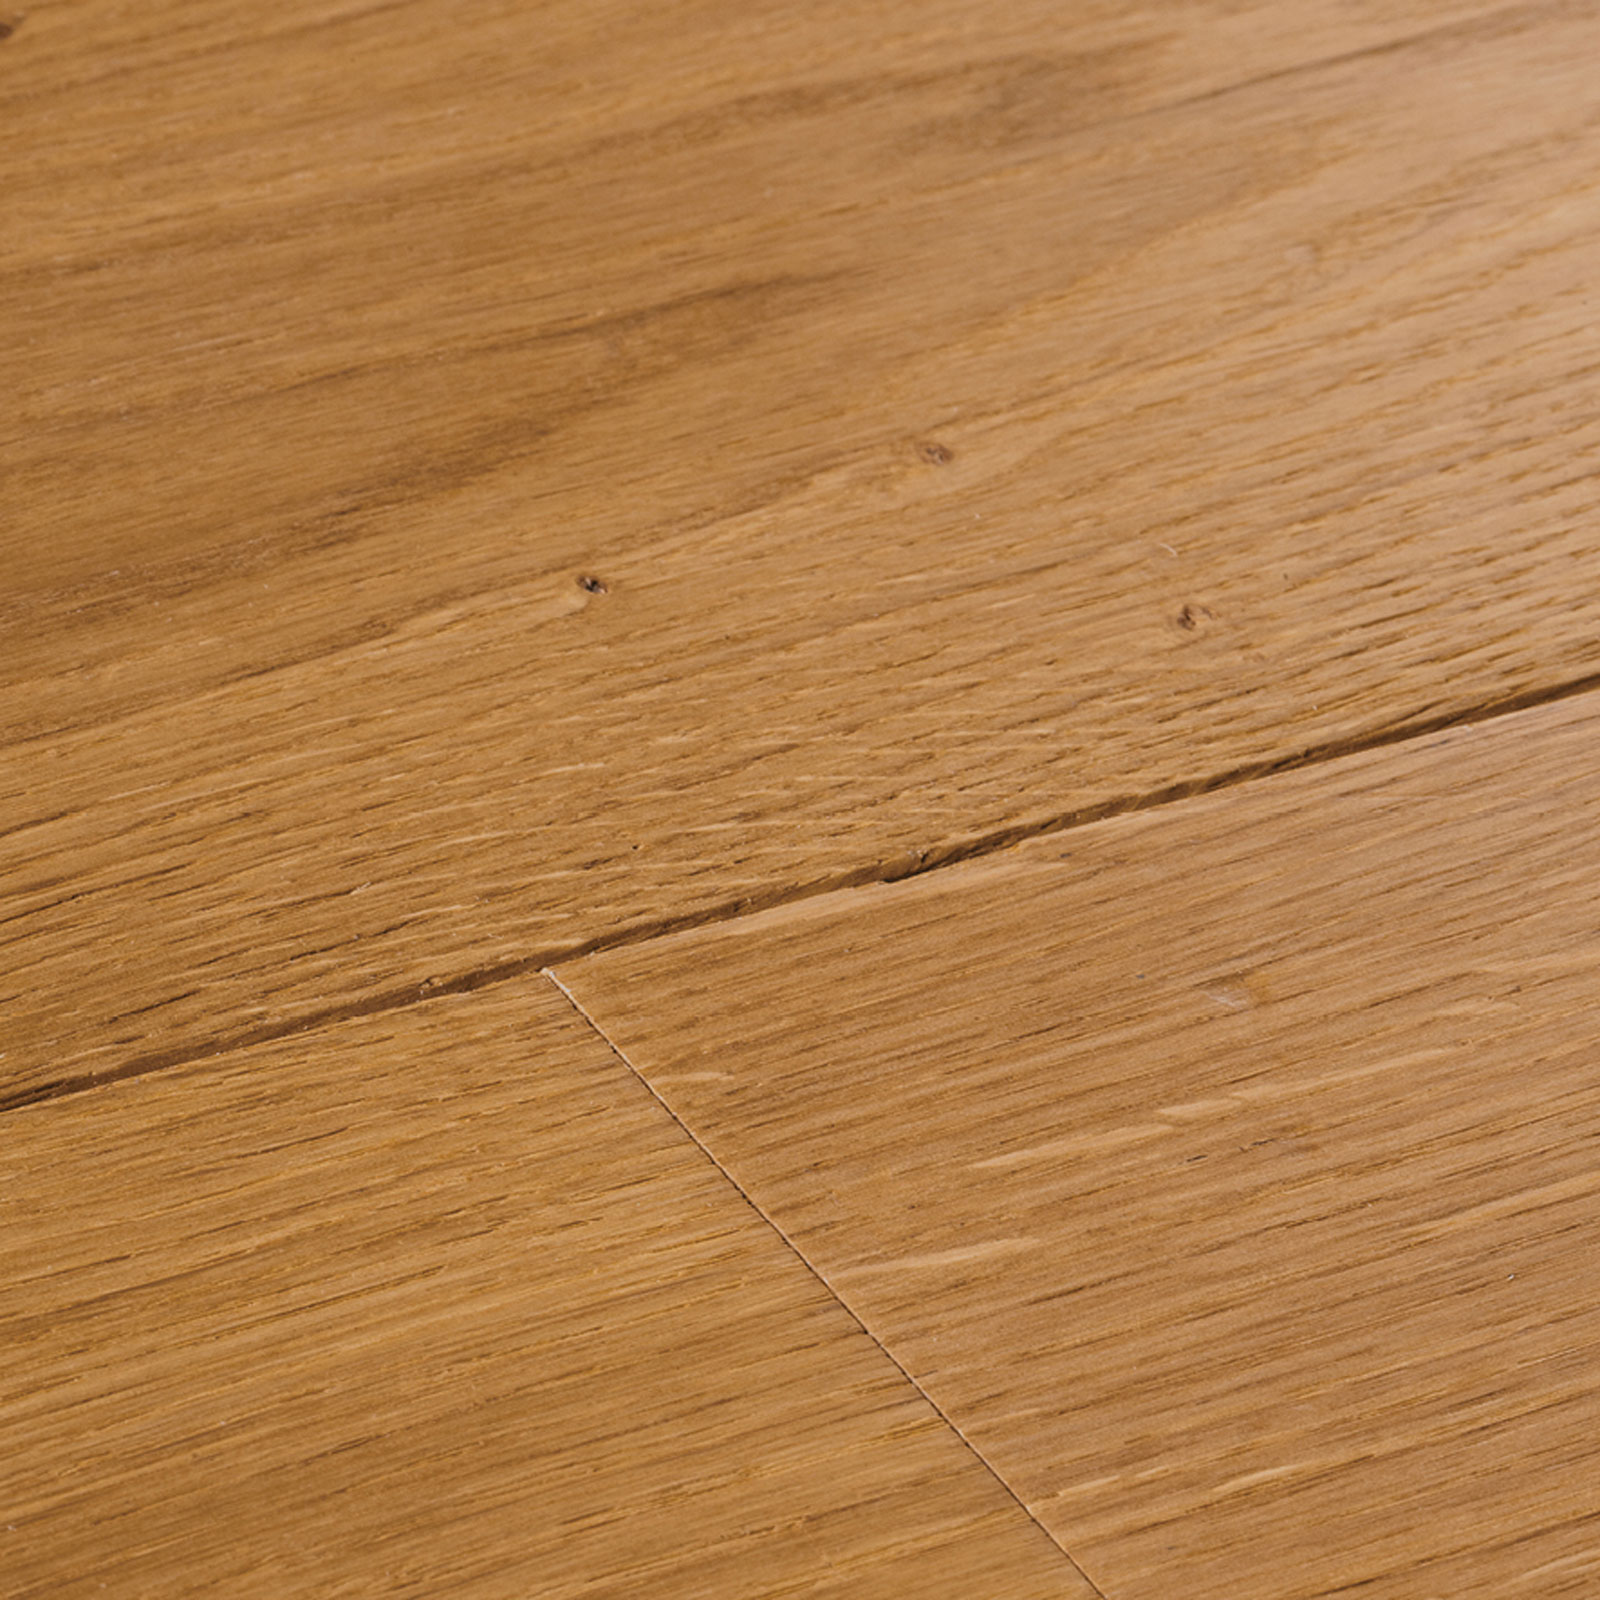 swatch-cropped-chepstow-distressed-natural-oak-1600